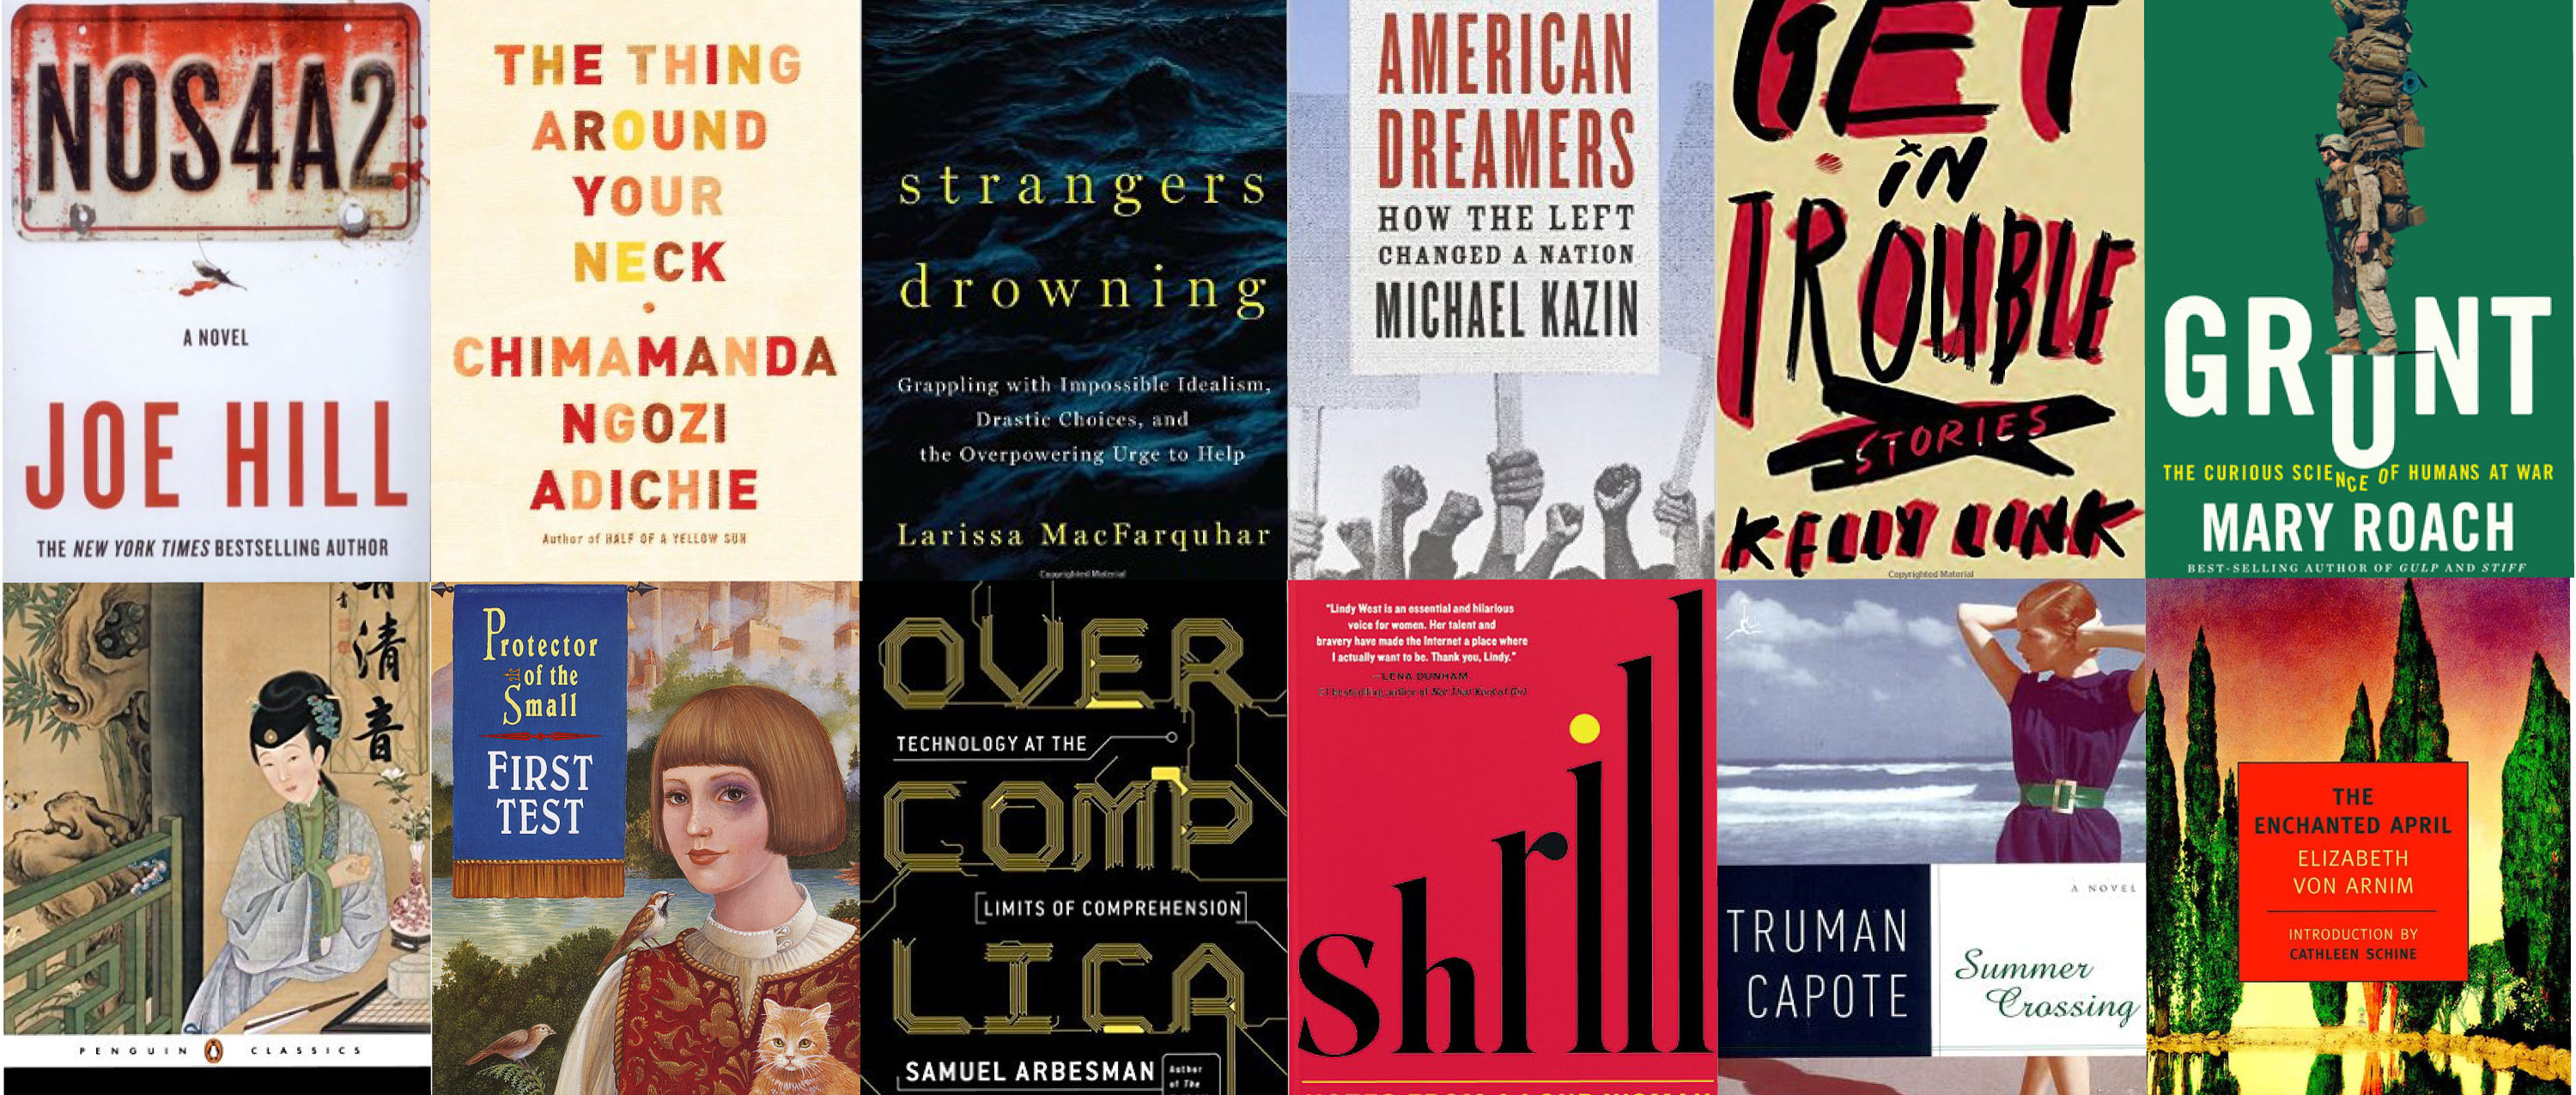 Vox recommends: 15 books to read this summer - Vox